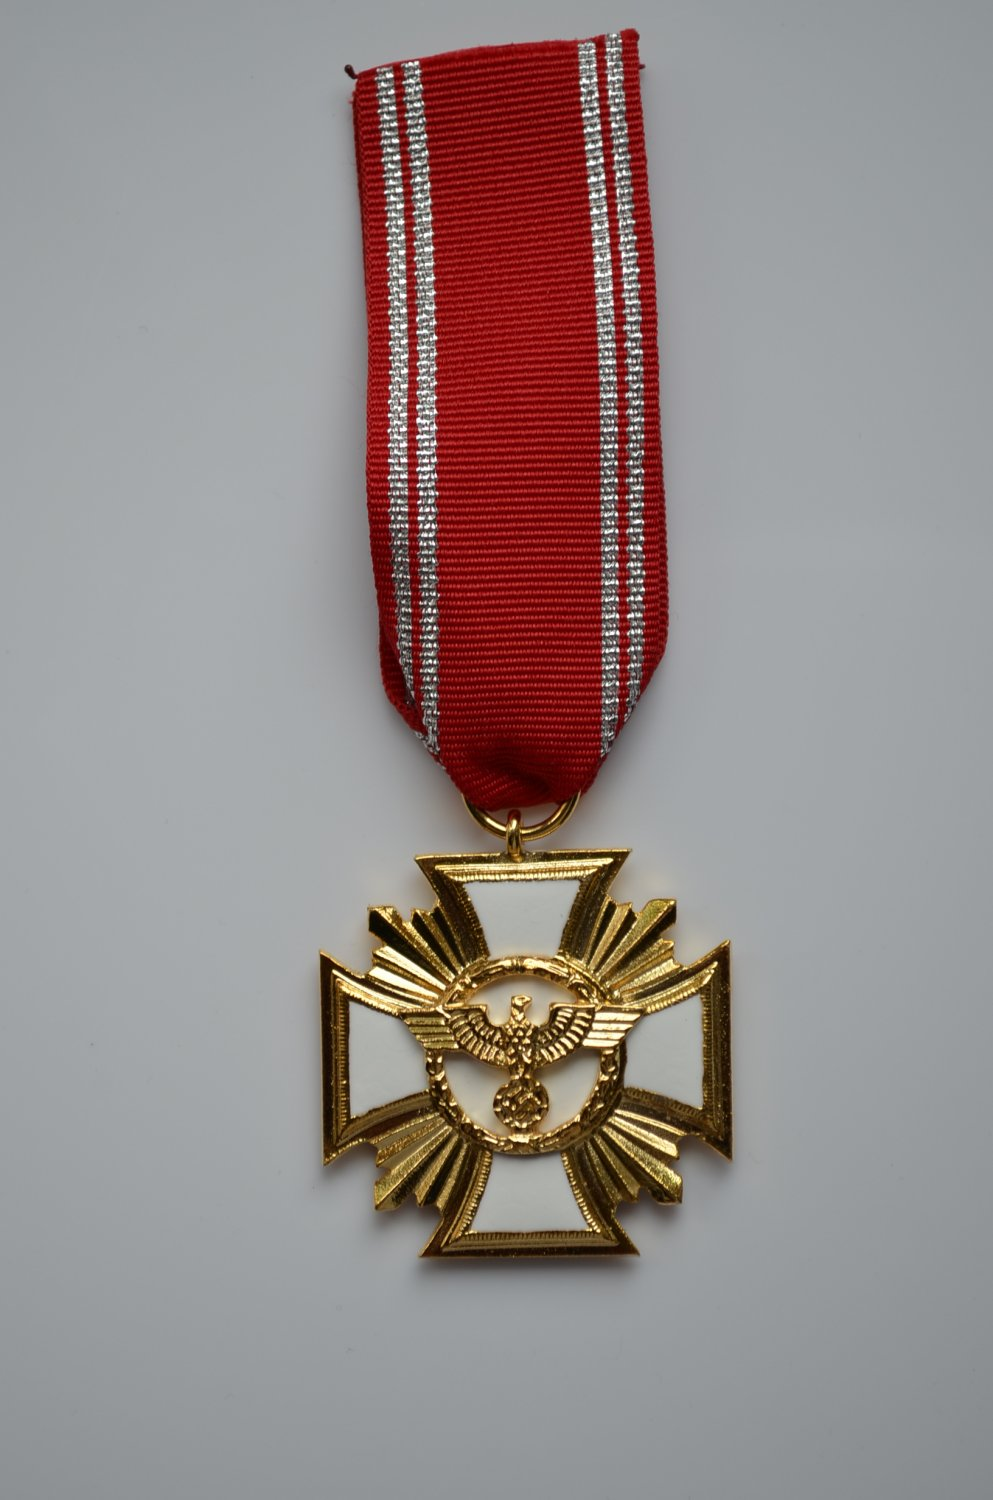 WWII THE GERMAN GOLD MEDAL LONG SERVICE AWARDS OF THE NSDAP